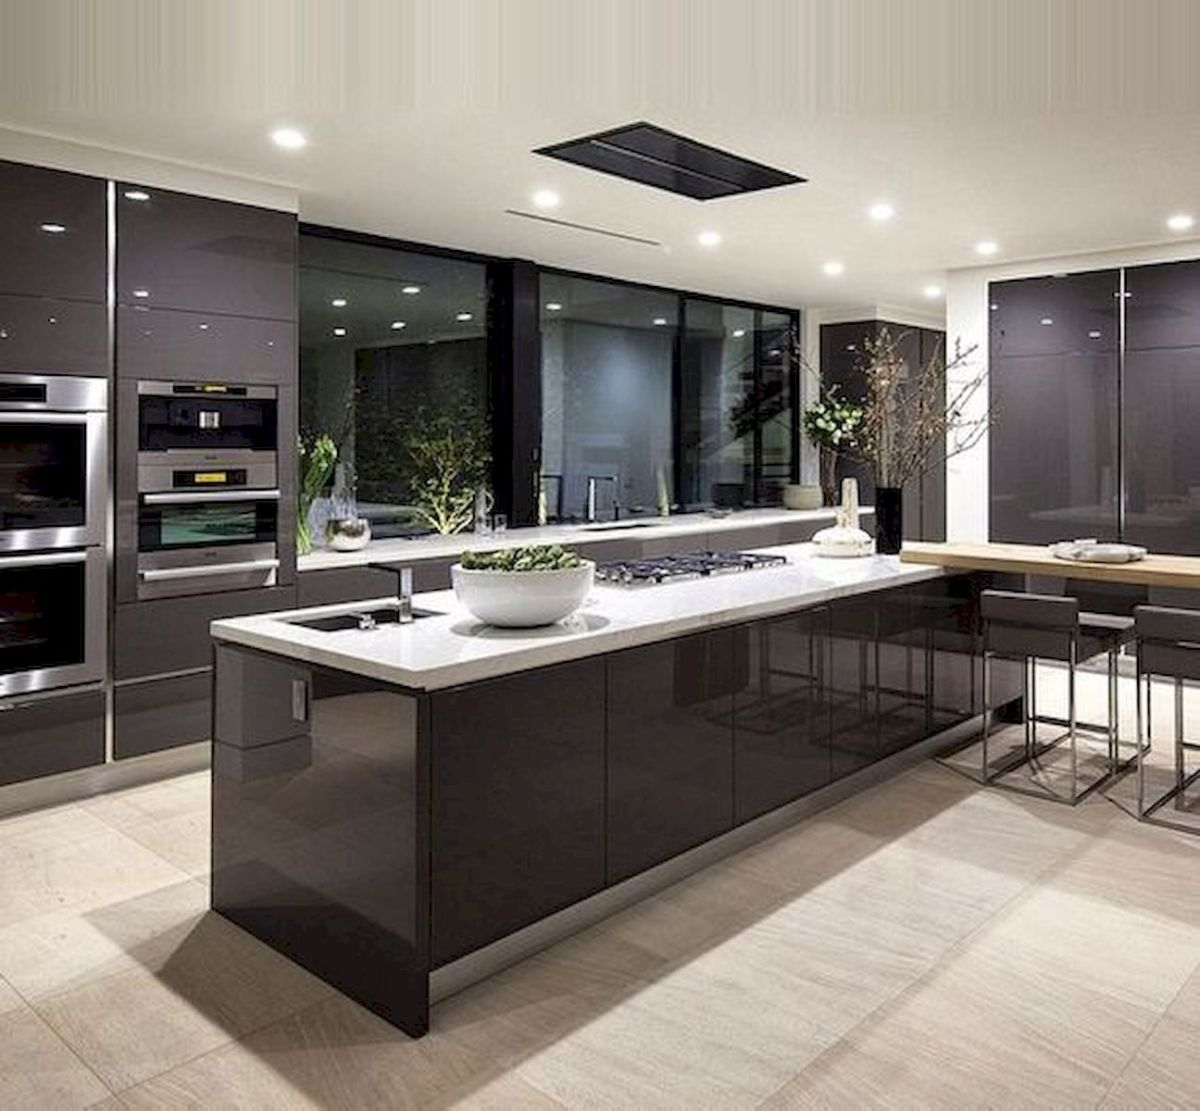 48 Luxury Modern Dream Kitchen Design Ideas And Decor (29)